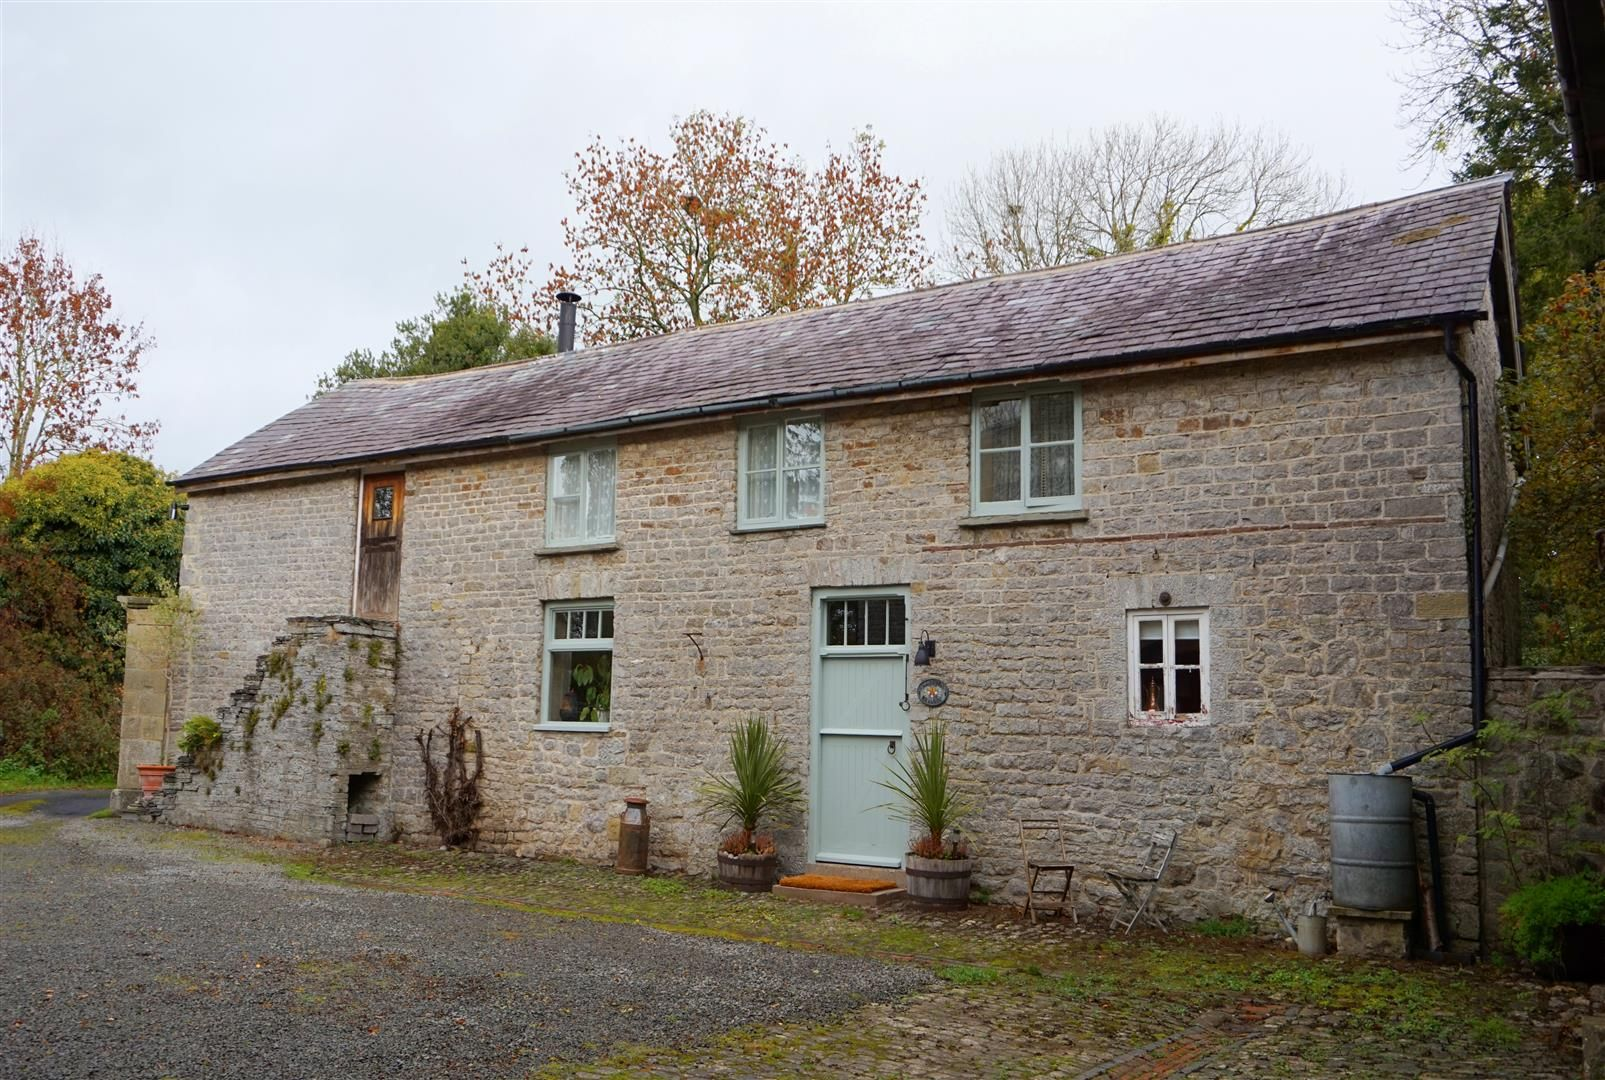 3 bed detached for sale in Presteigne 1